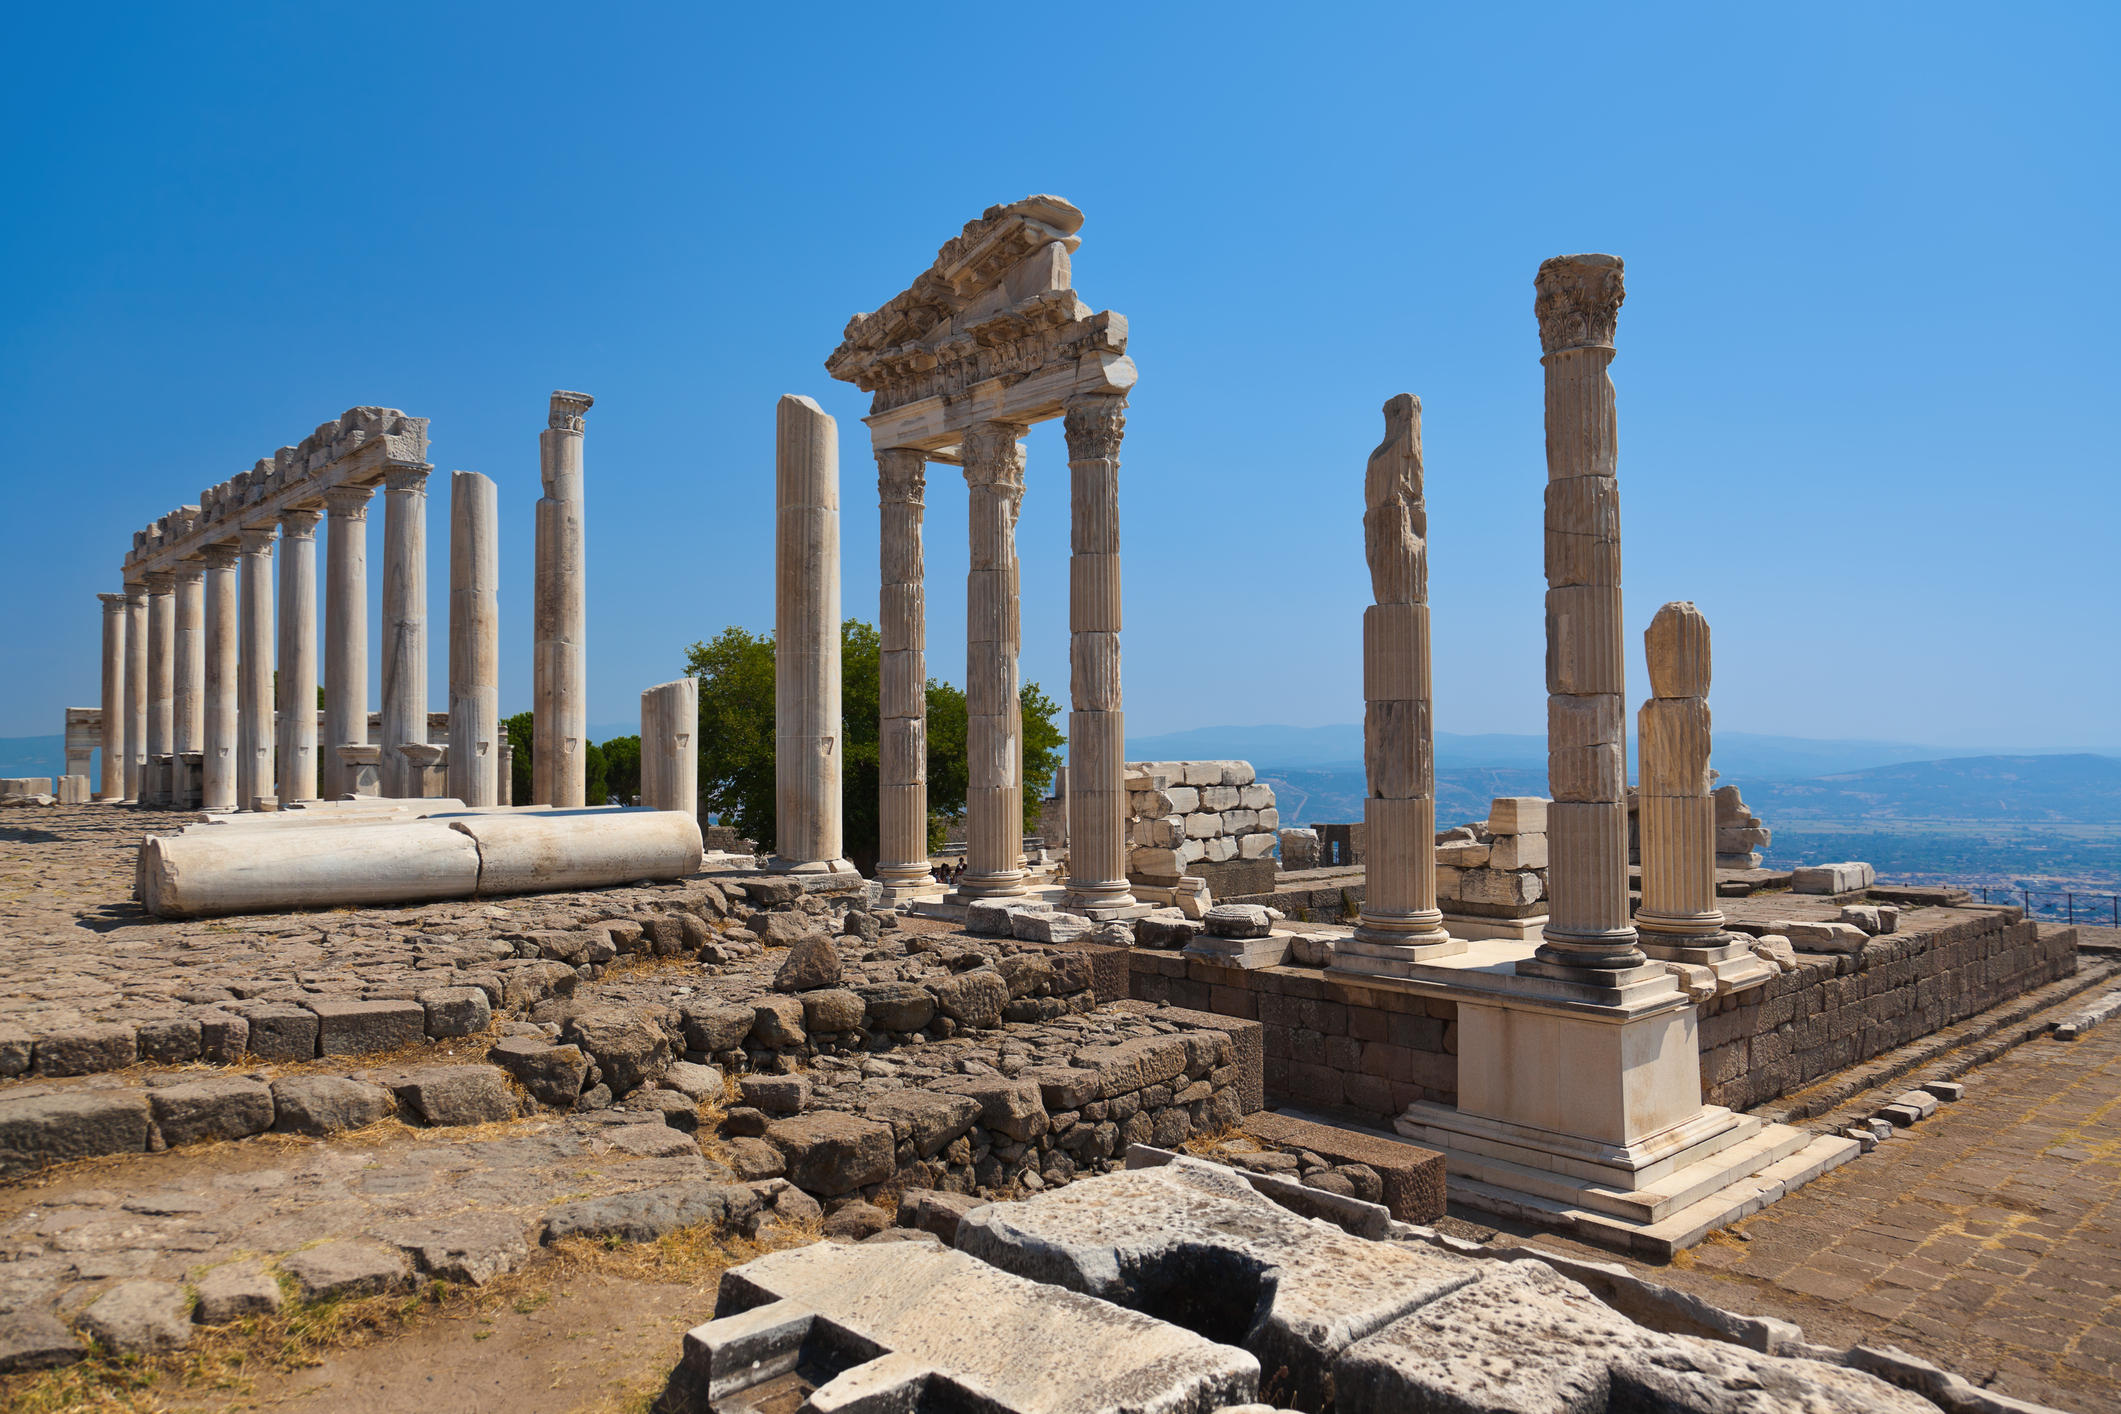 GALLIPOLI - TROY - PERGAMON 2 DAYS 1 NIGHT BY BUS